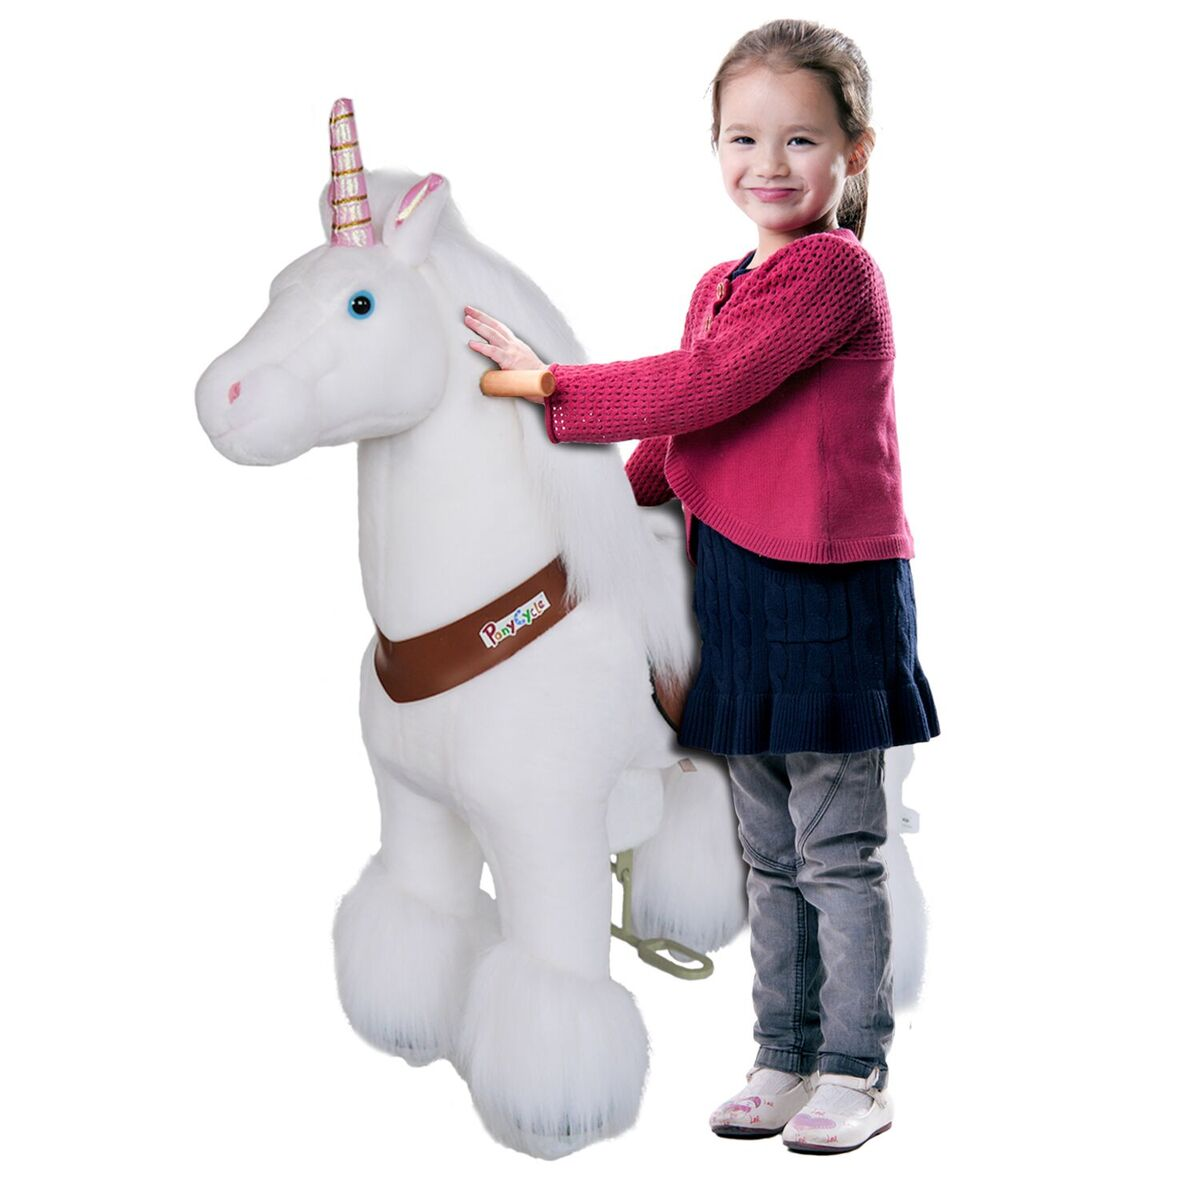 Pony Cycle Vroom Rider UNICORN Ride-On Kids Riding Toy Rocking Horse